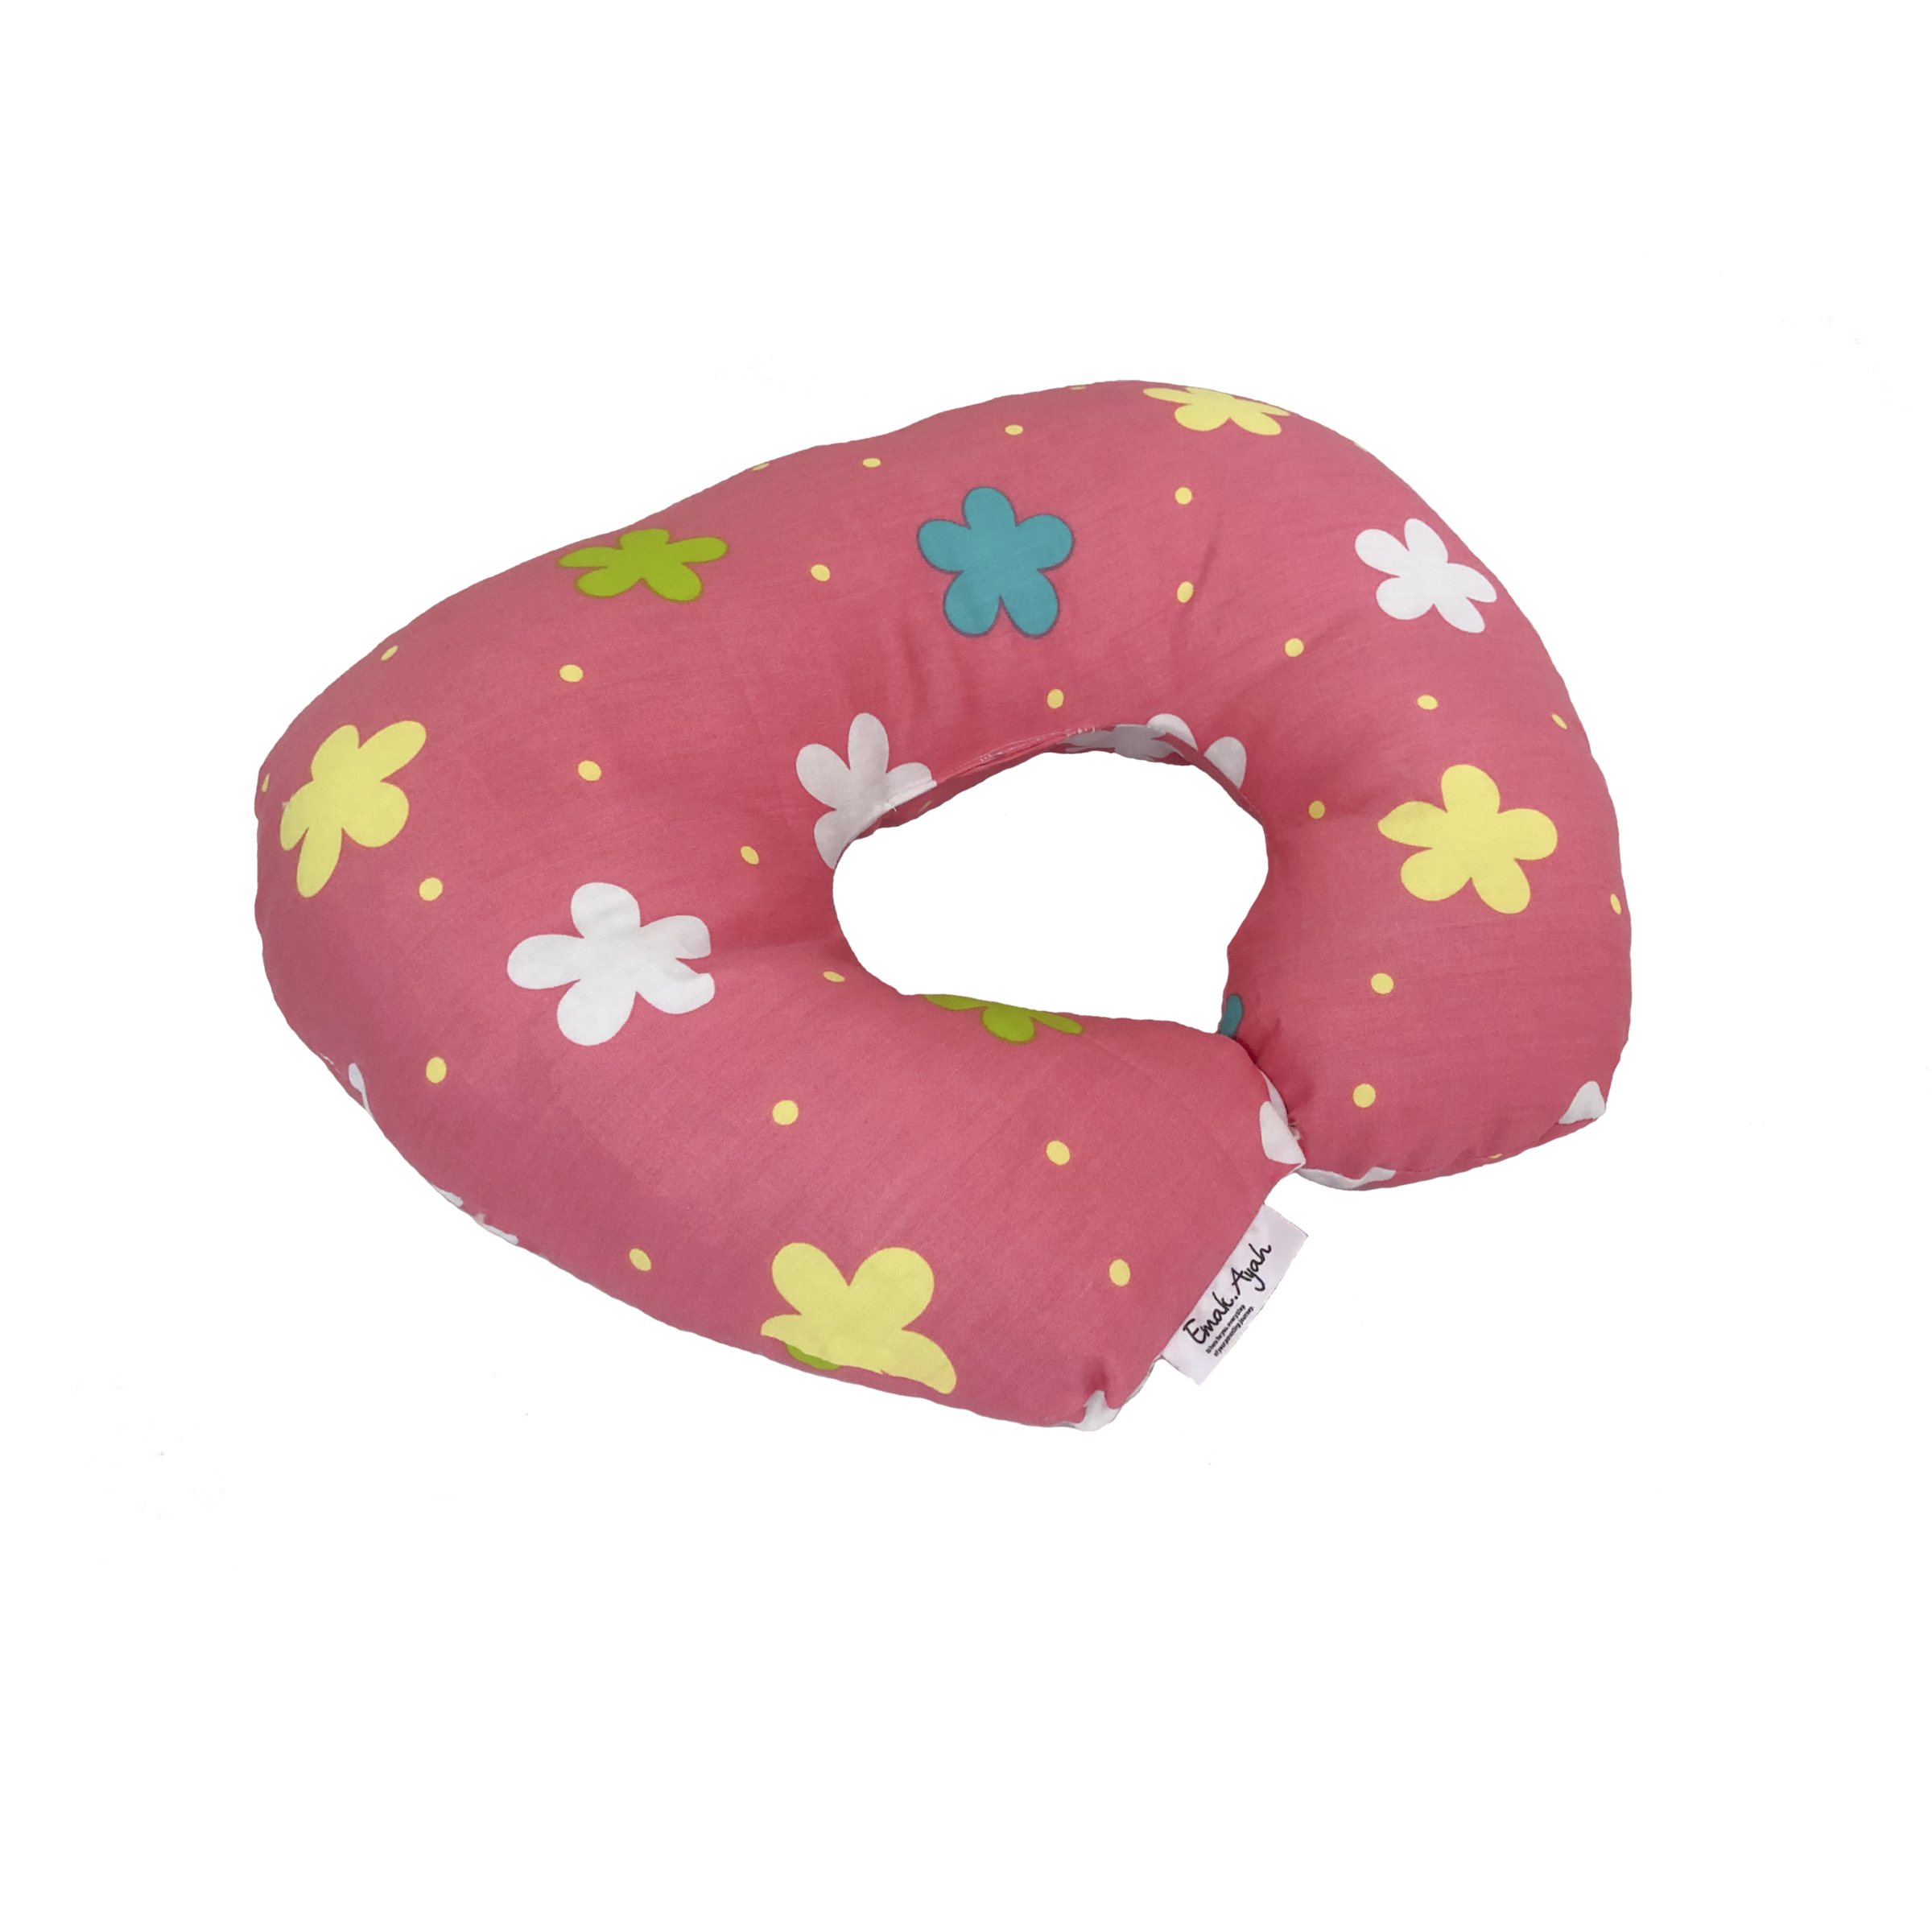 Featured Pro (Nursing Pillow) Featured Pro.png